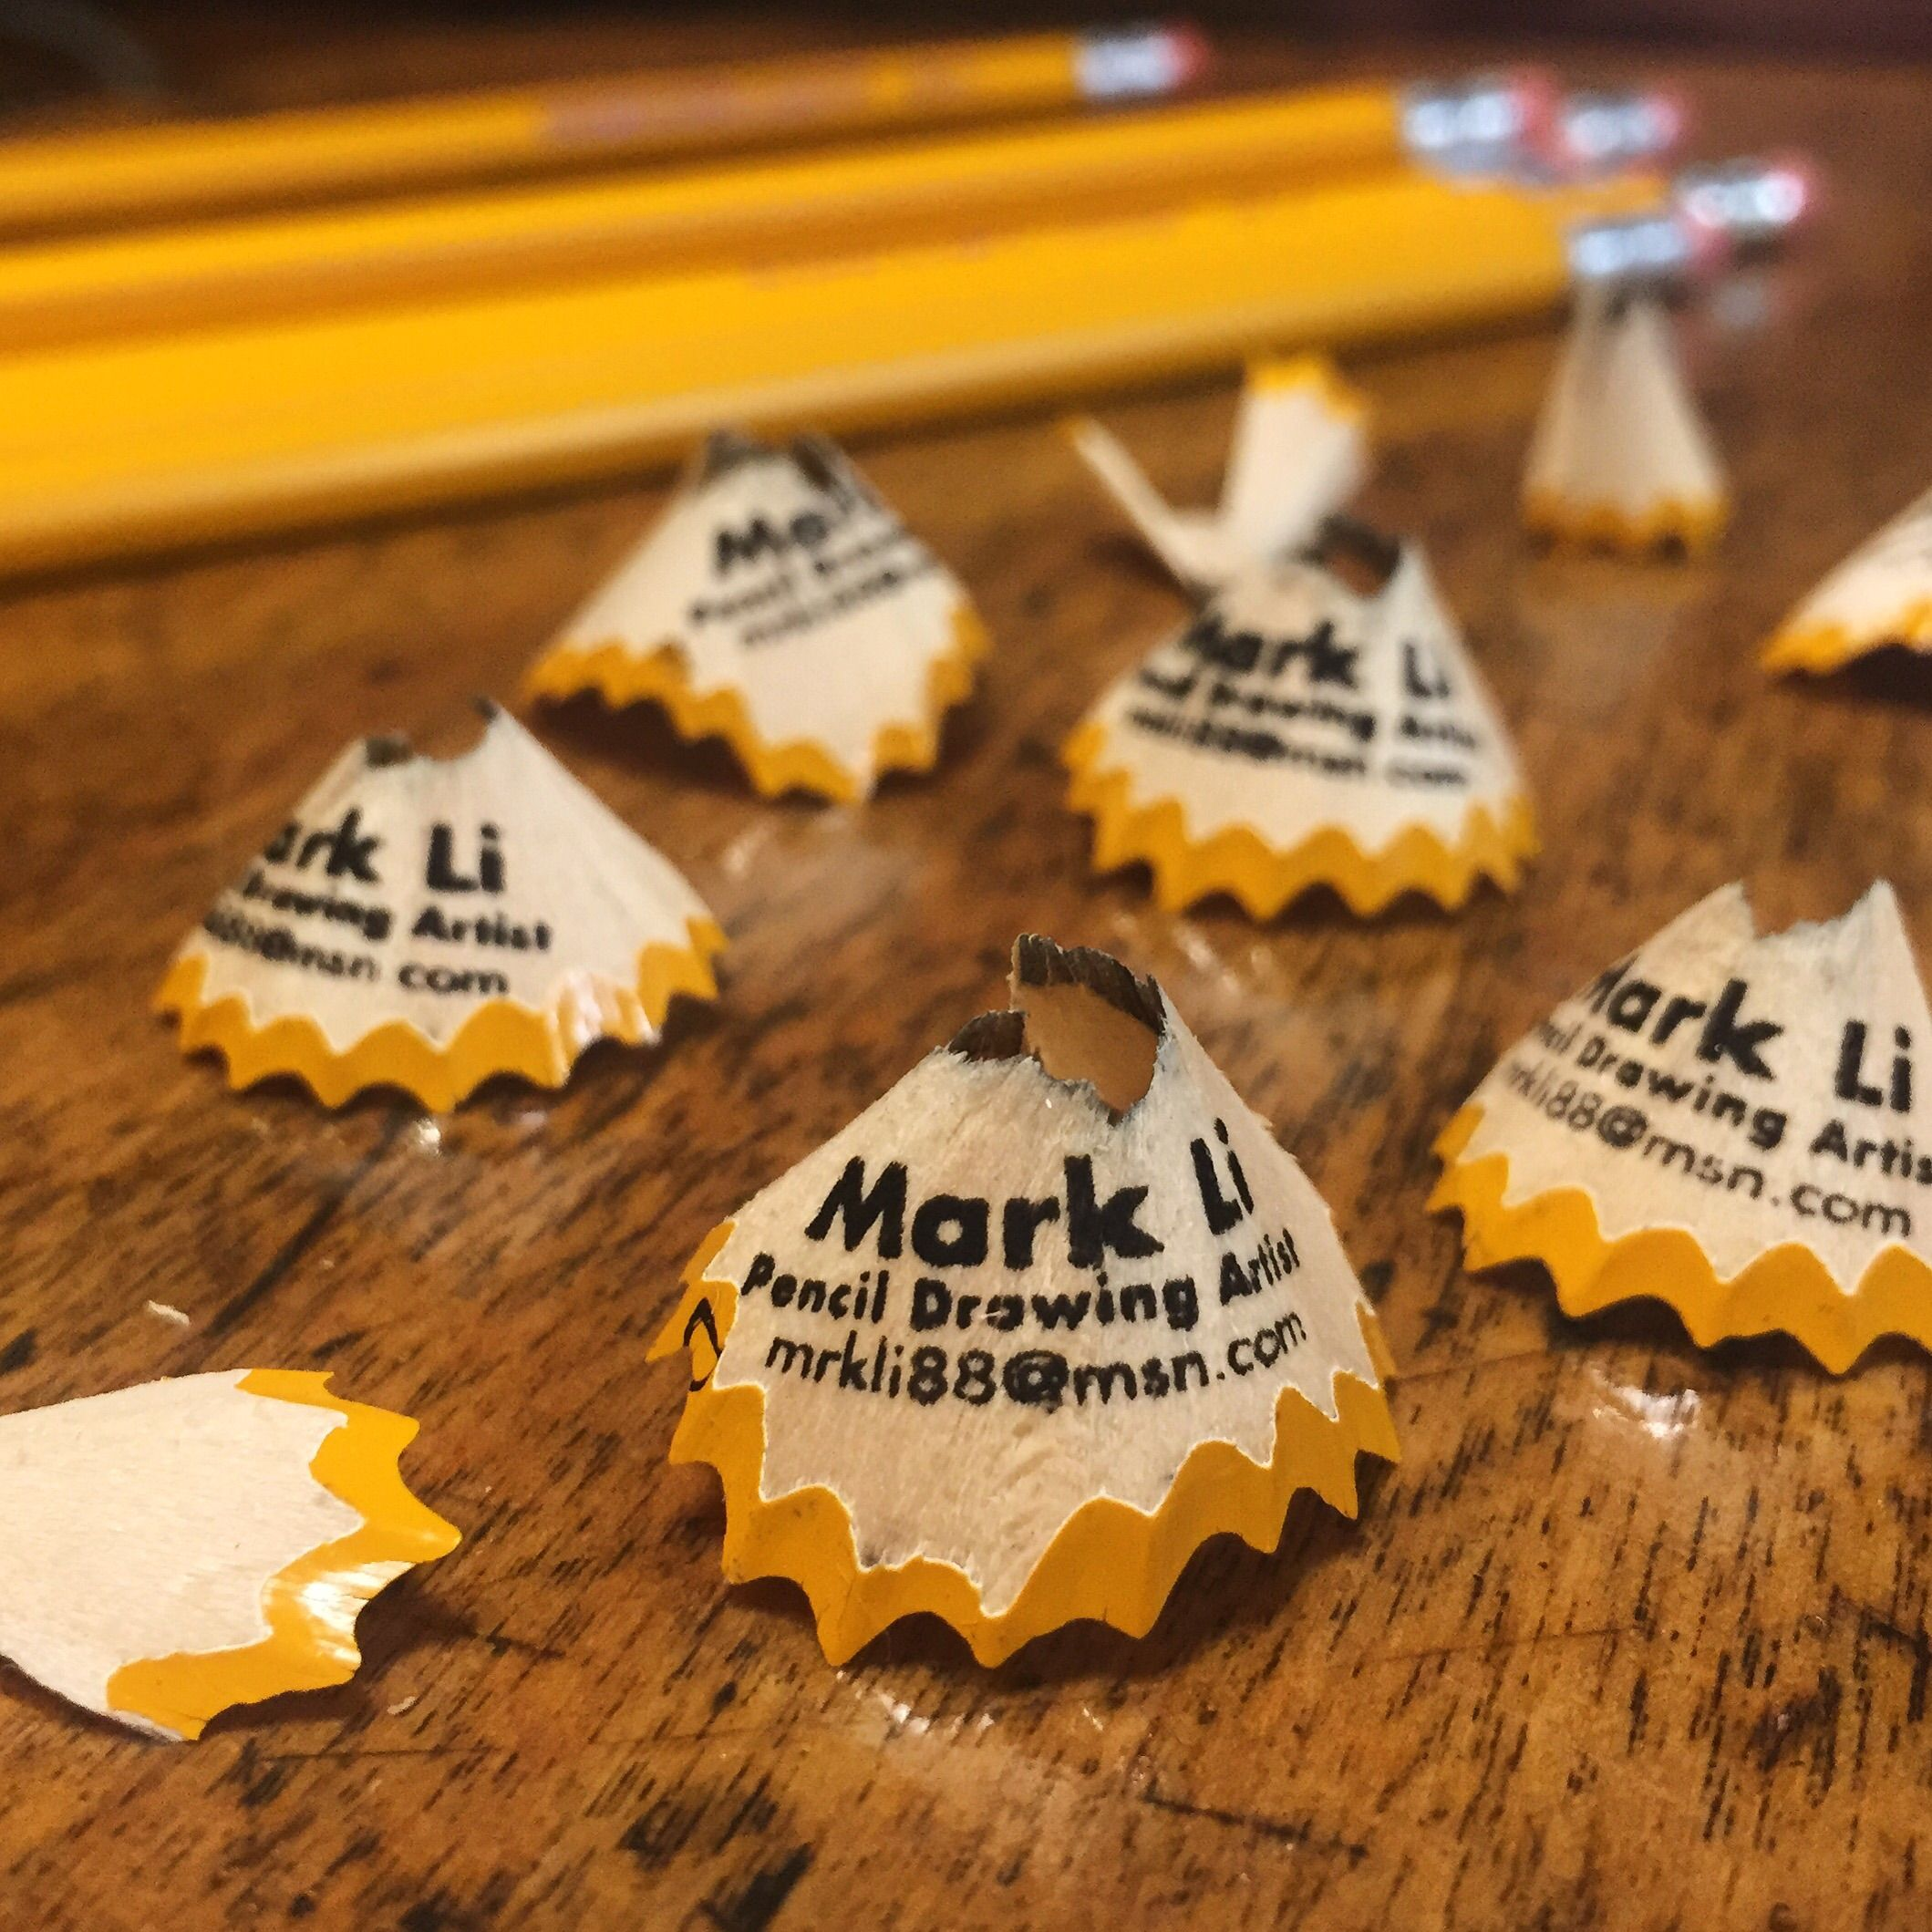 Pencil shavings turned into tiny business cards! Produced by ...